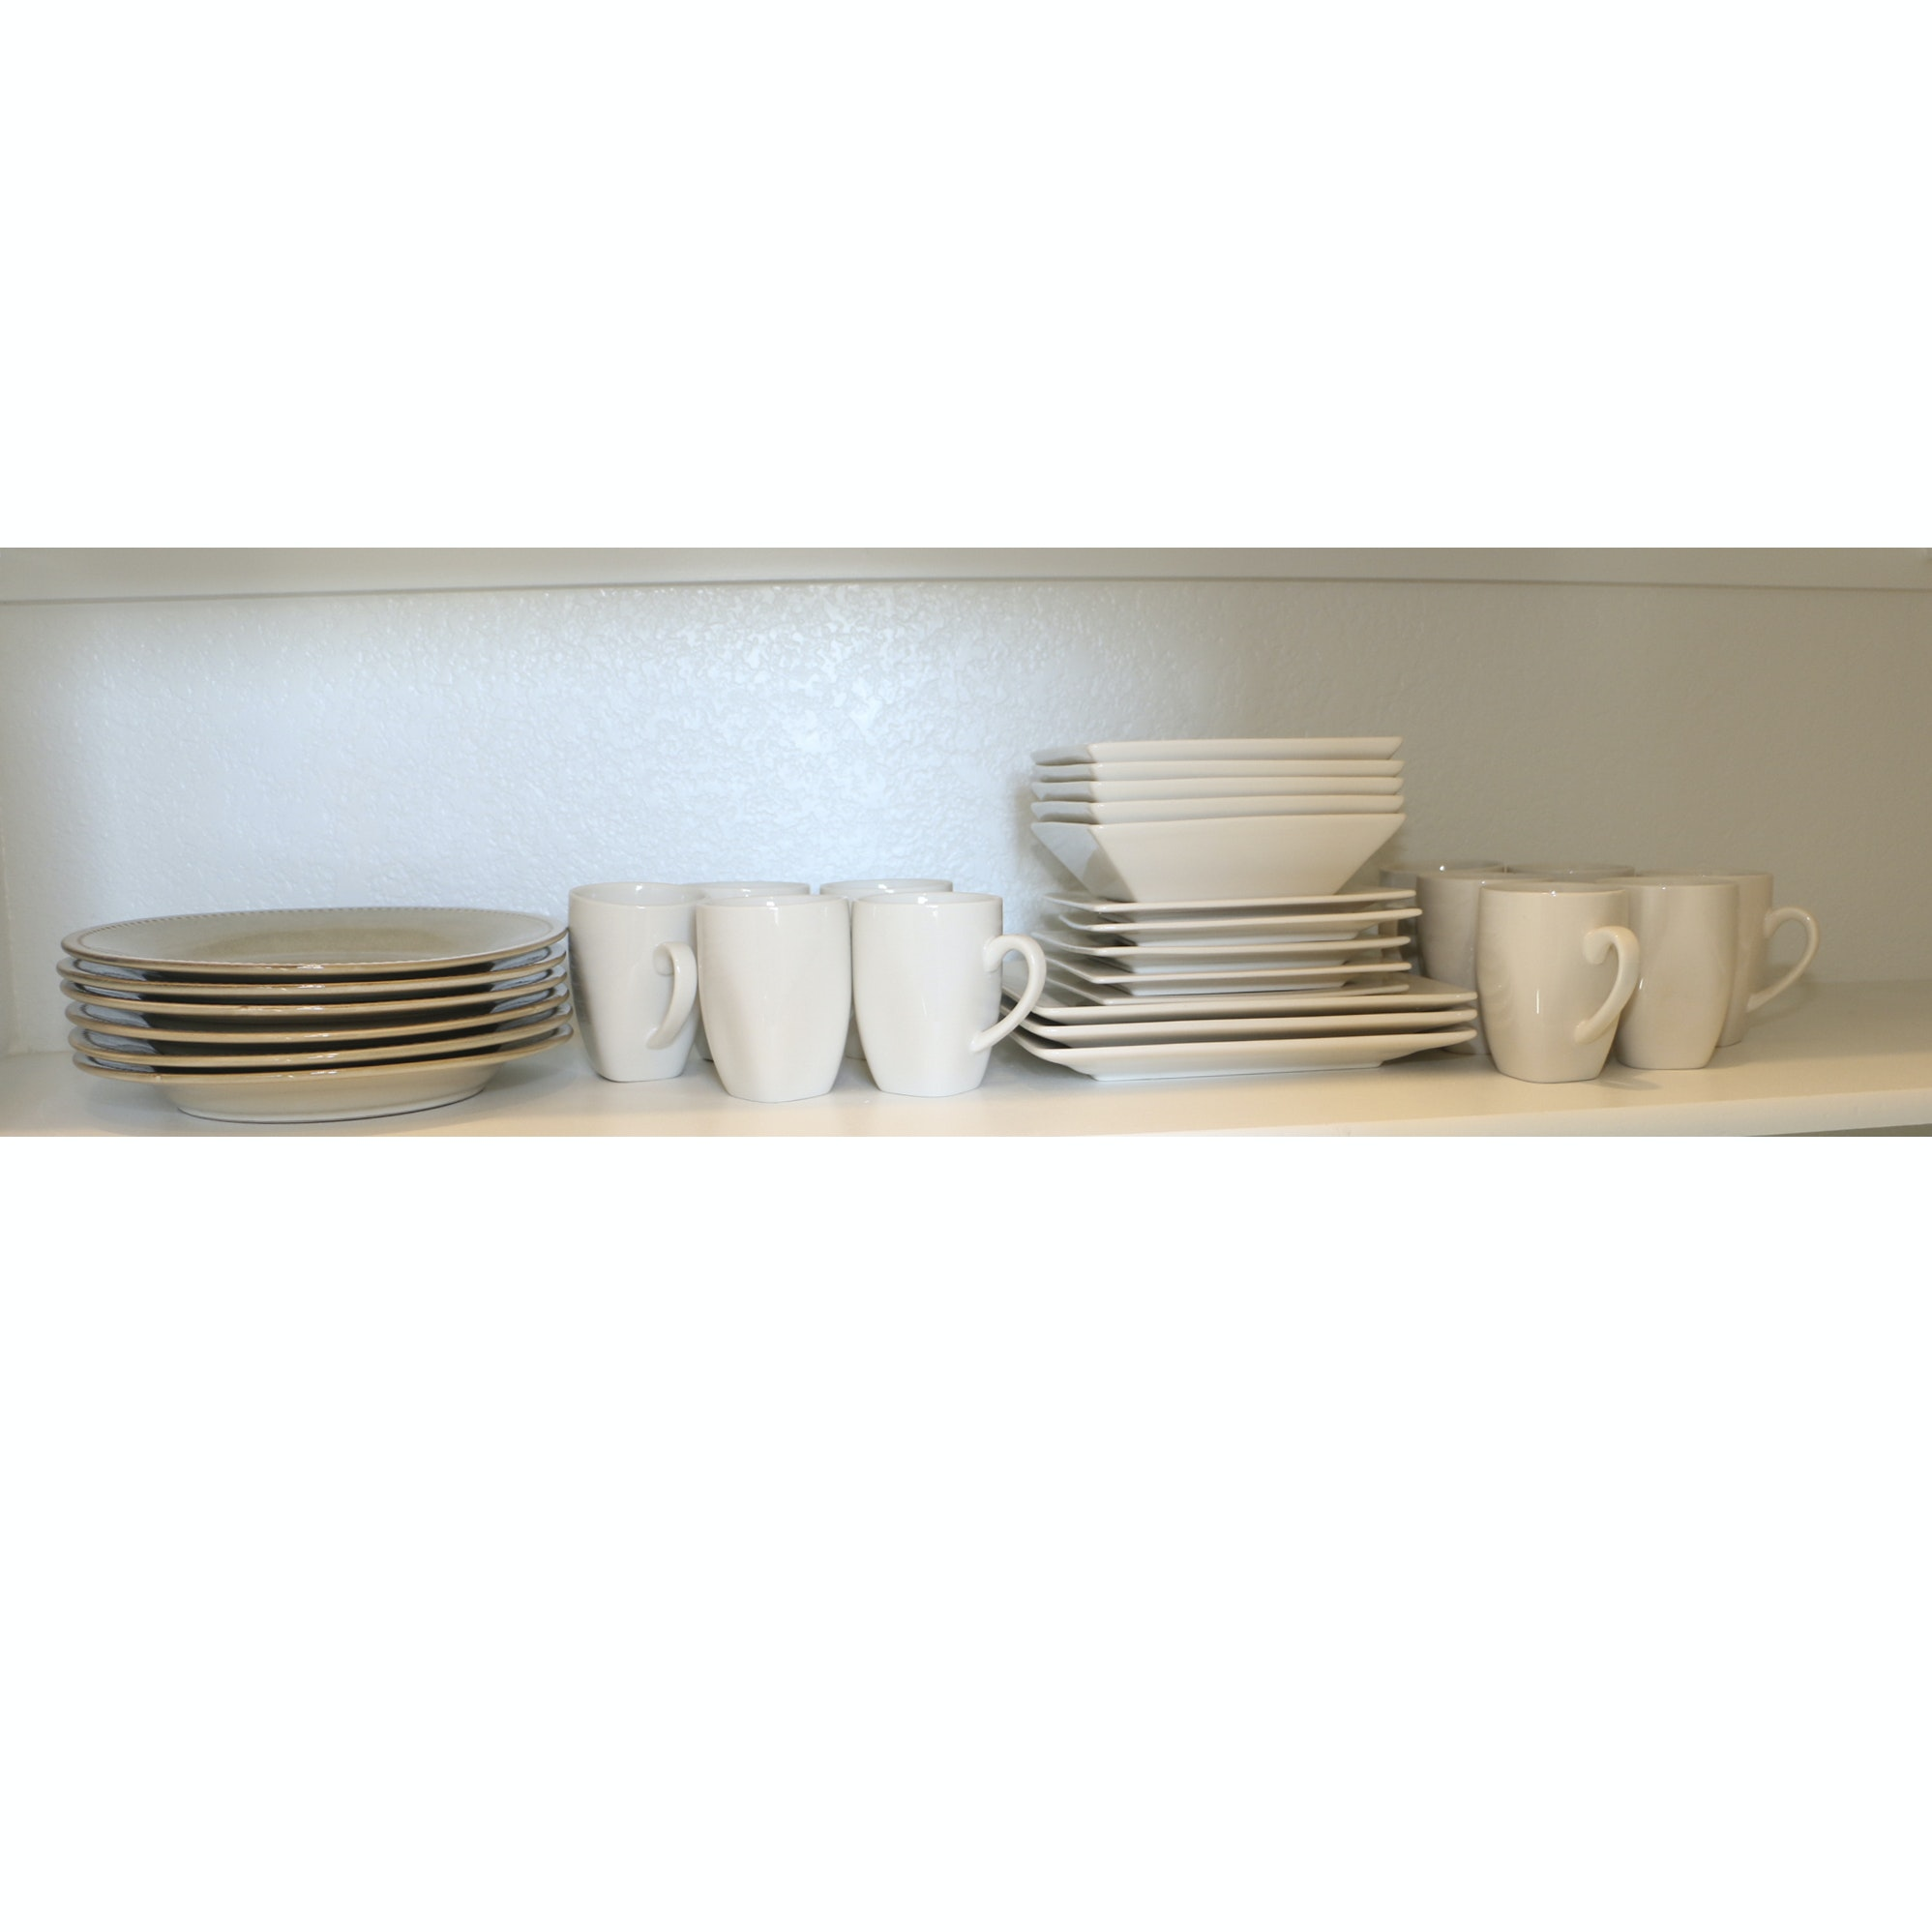 White and Taupe Ceramic Dinnerware featuring Pier1 Imports